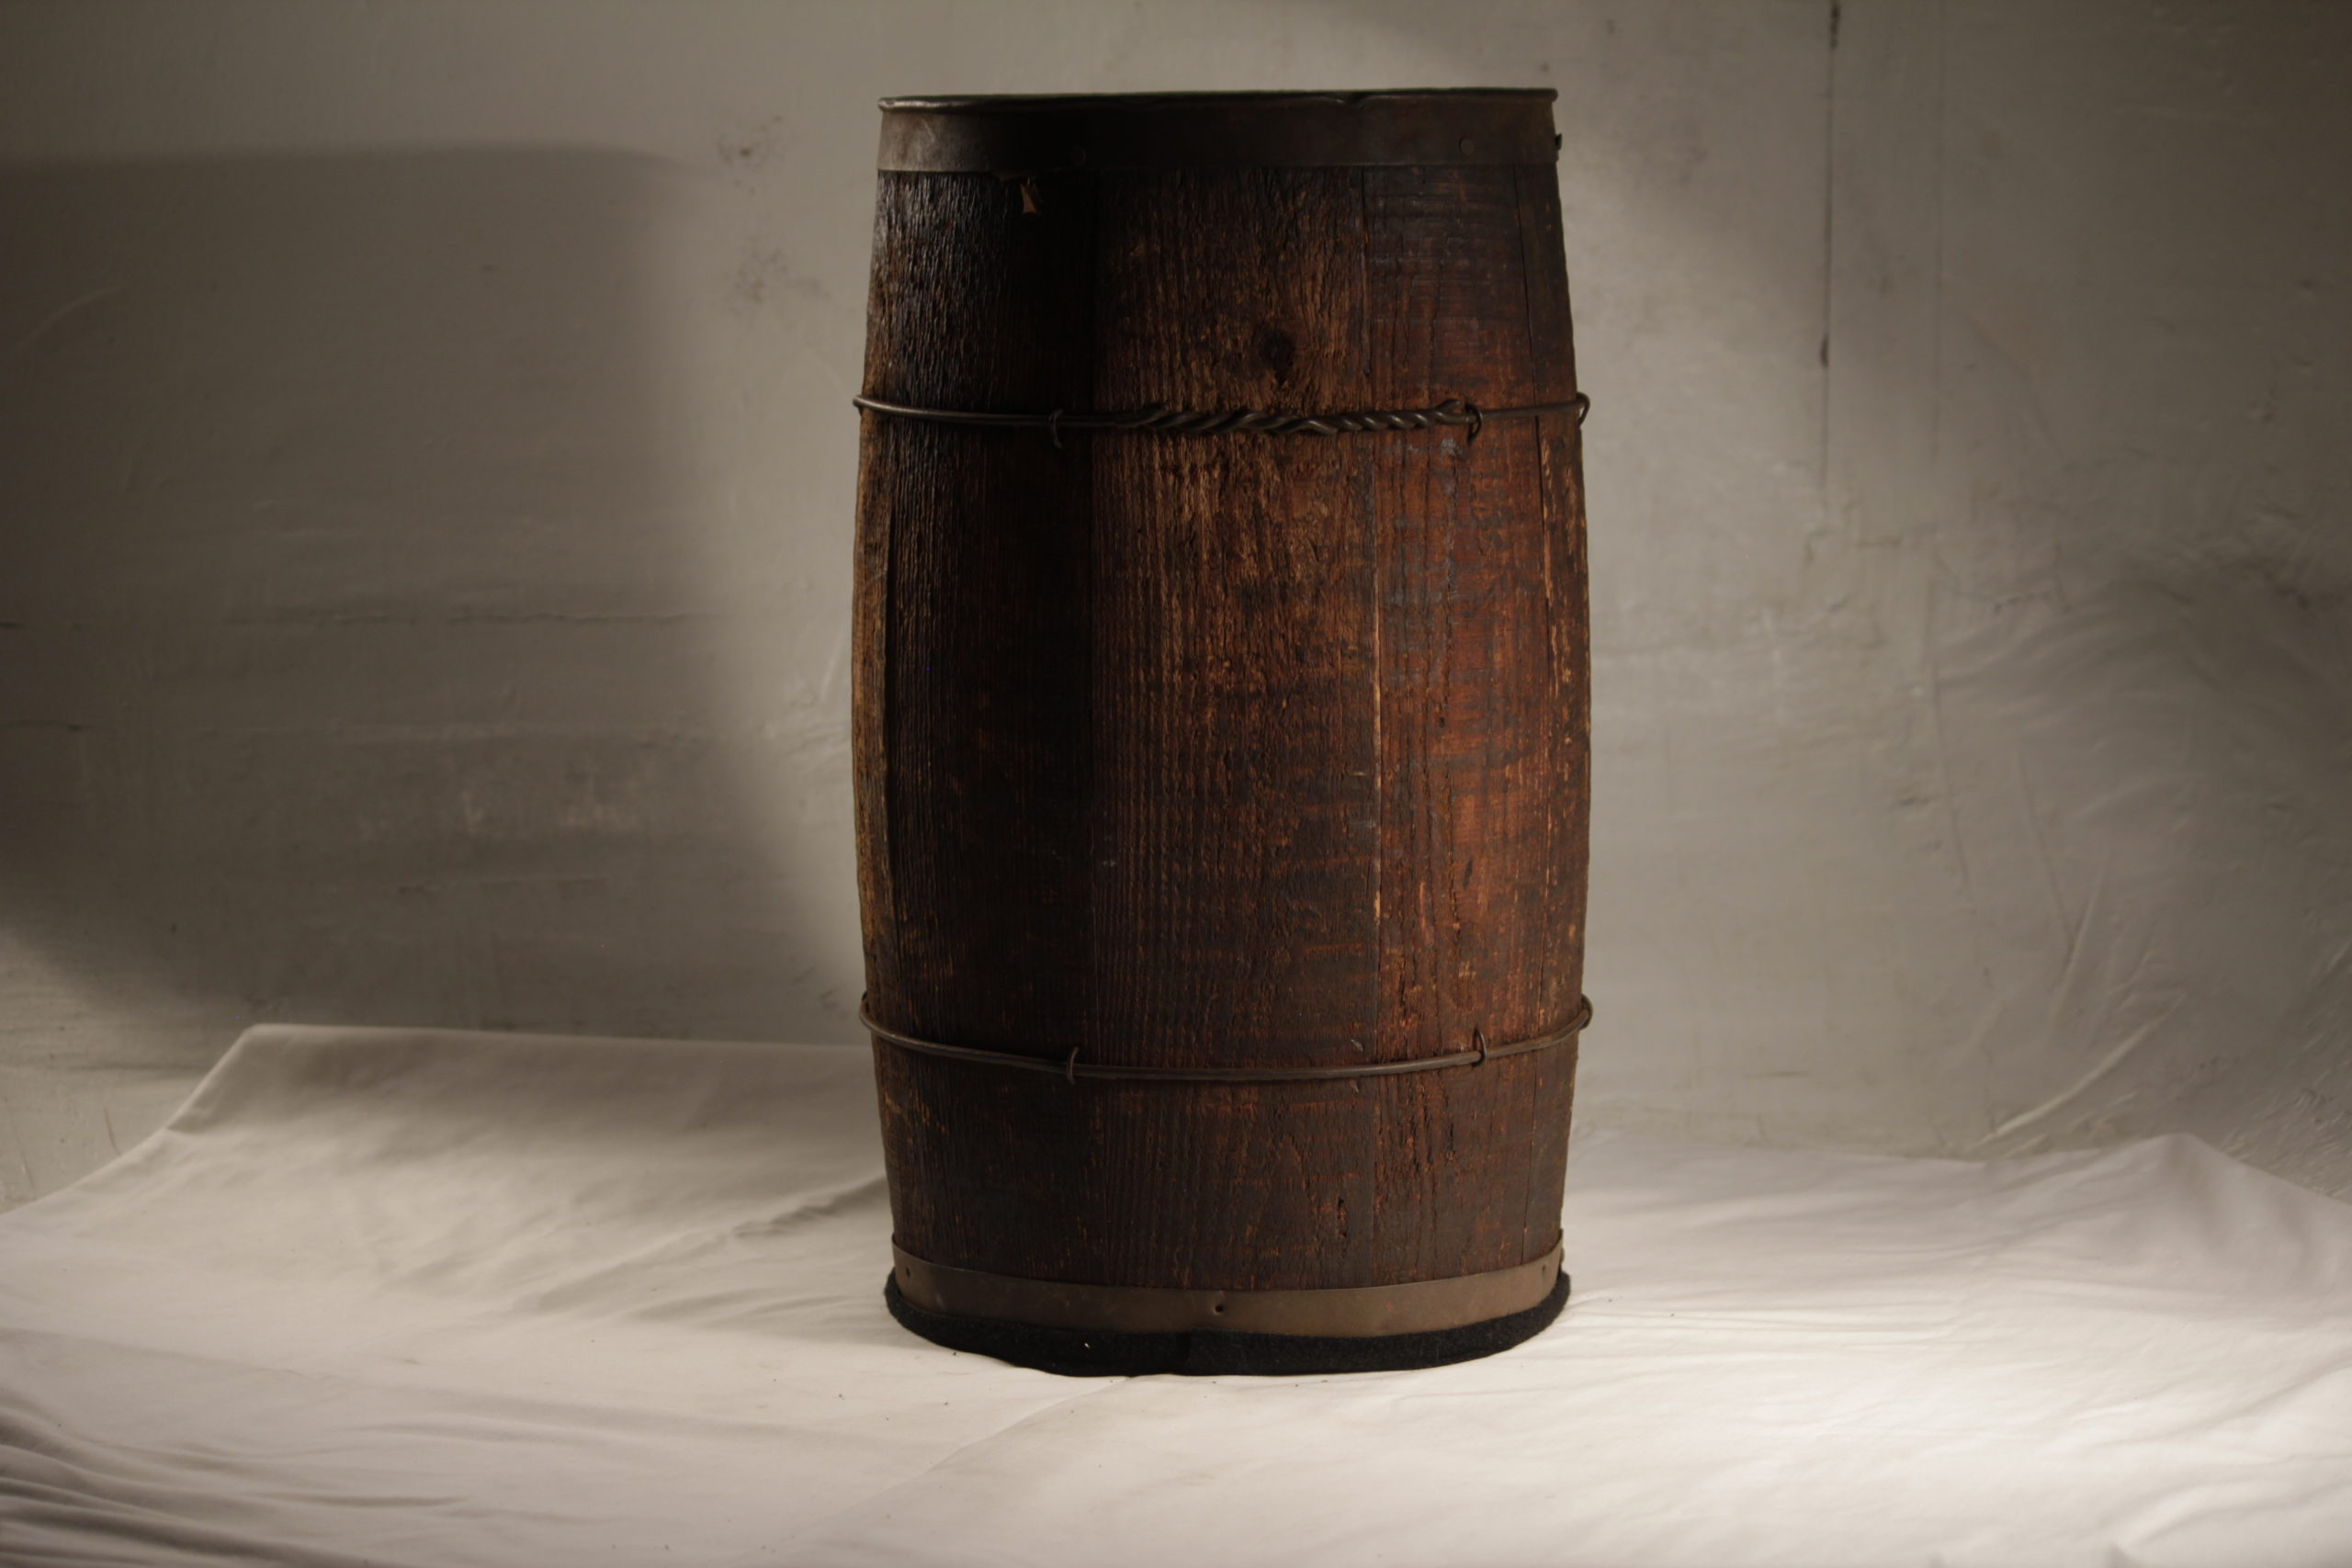 Barrel, small wooden brown